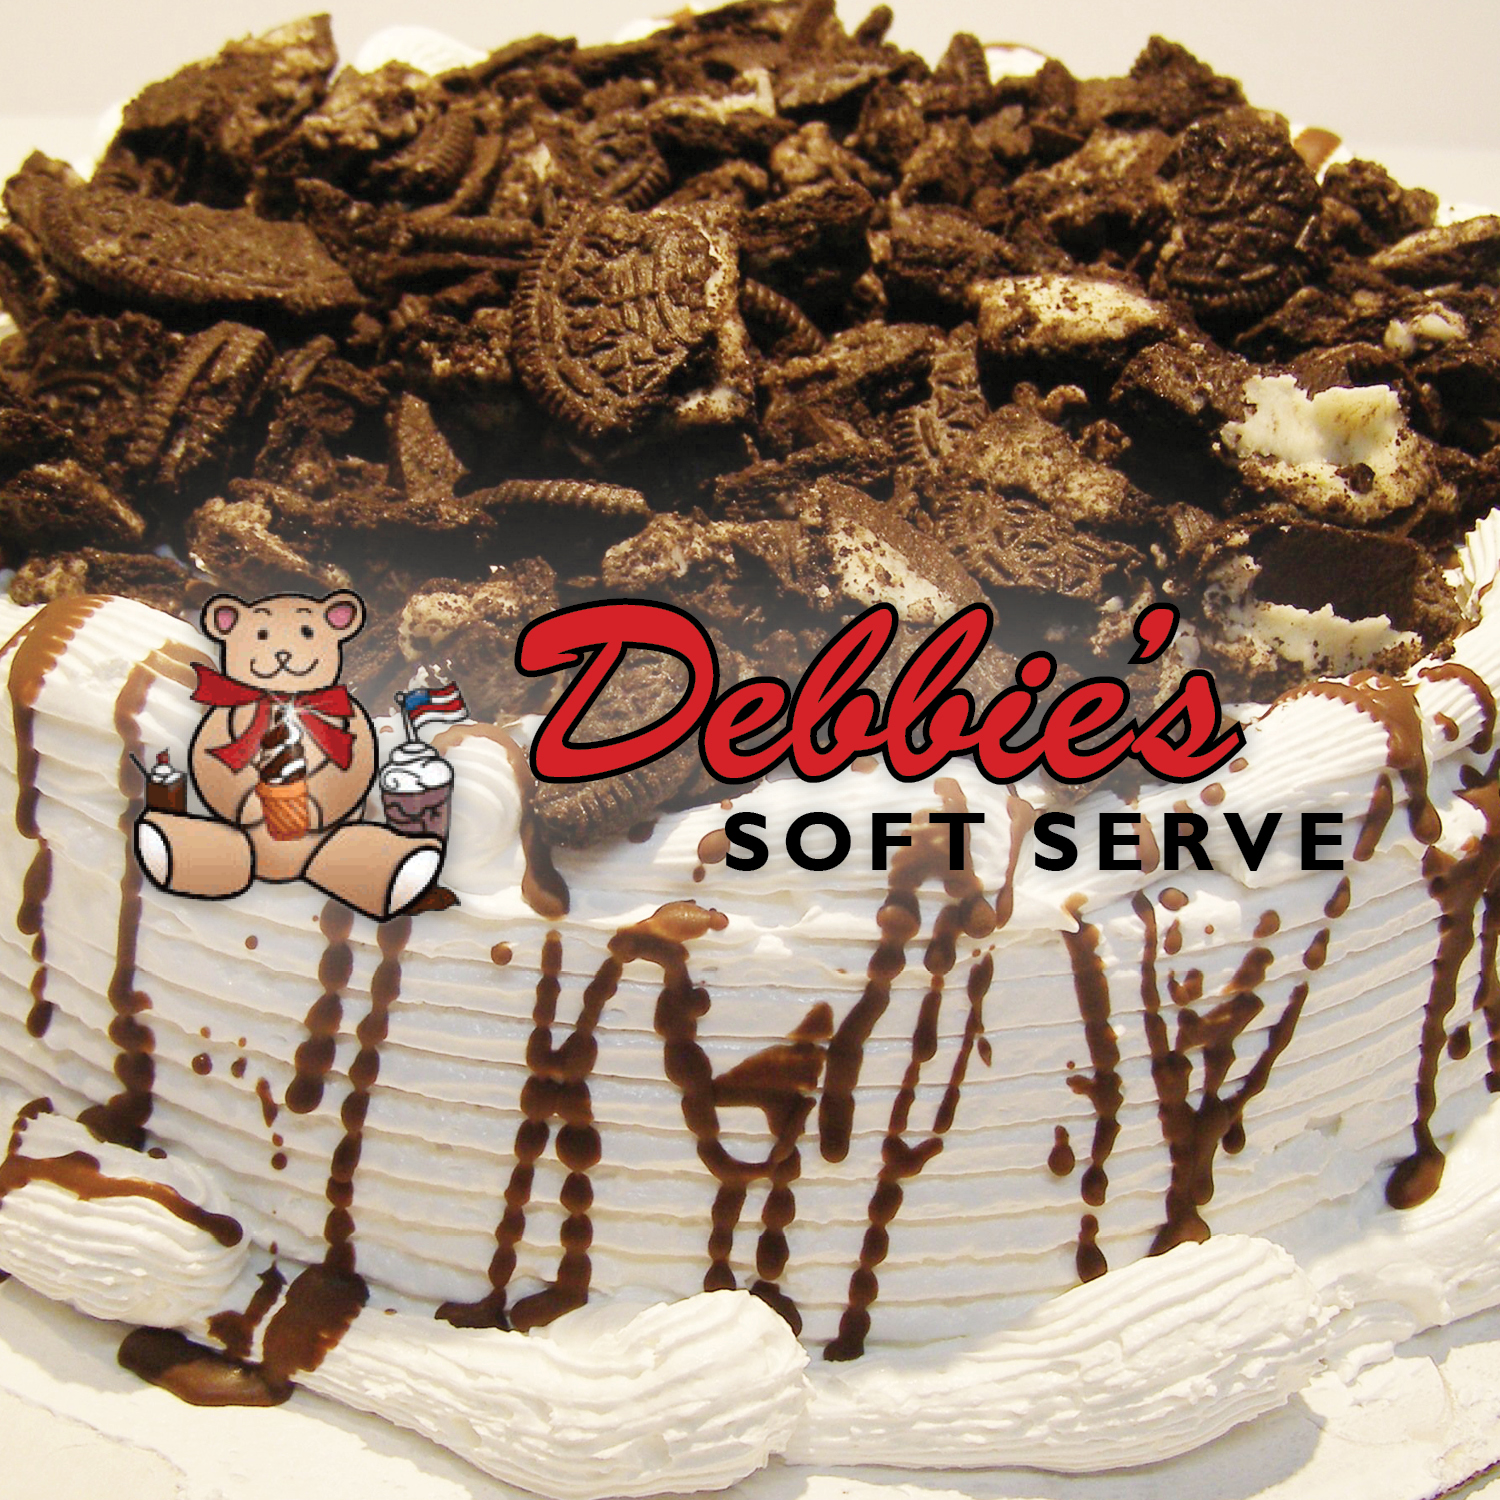 Debbie's now caters to all of your party needs with our ice cream cakes, pies, cupcakes, Debbie bars, Buddy bars, and ice cream sandwiches for any occasion all year around!    -Click image to view current offers-